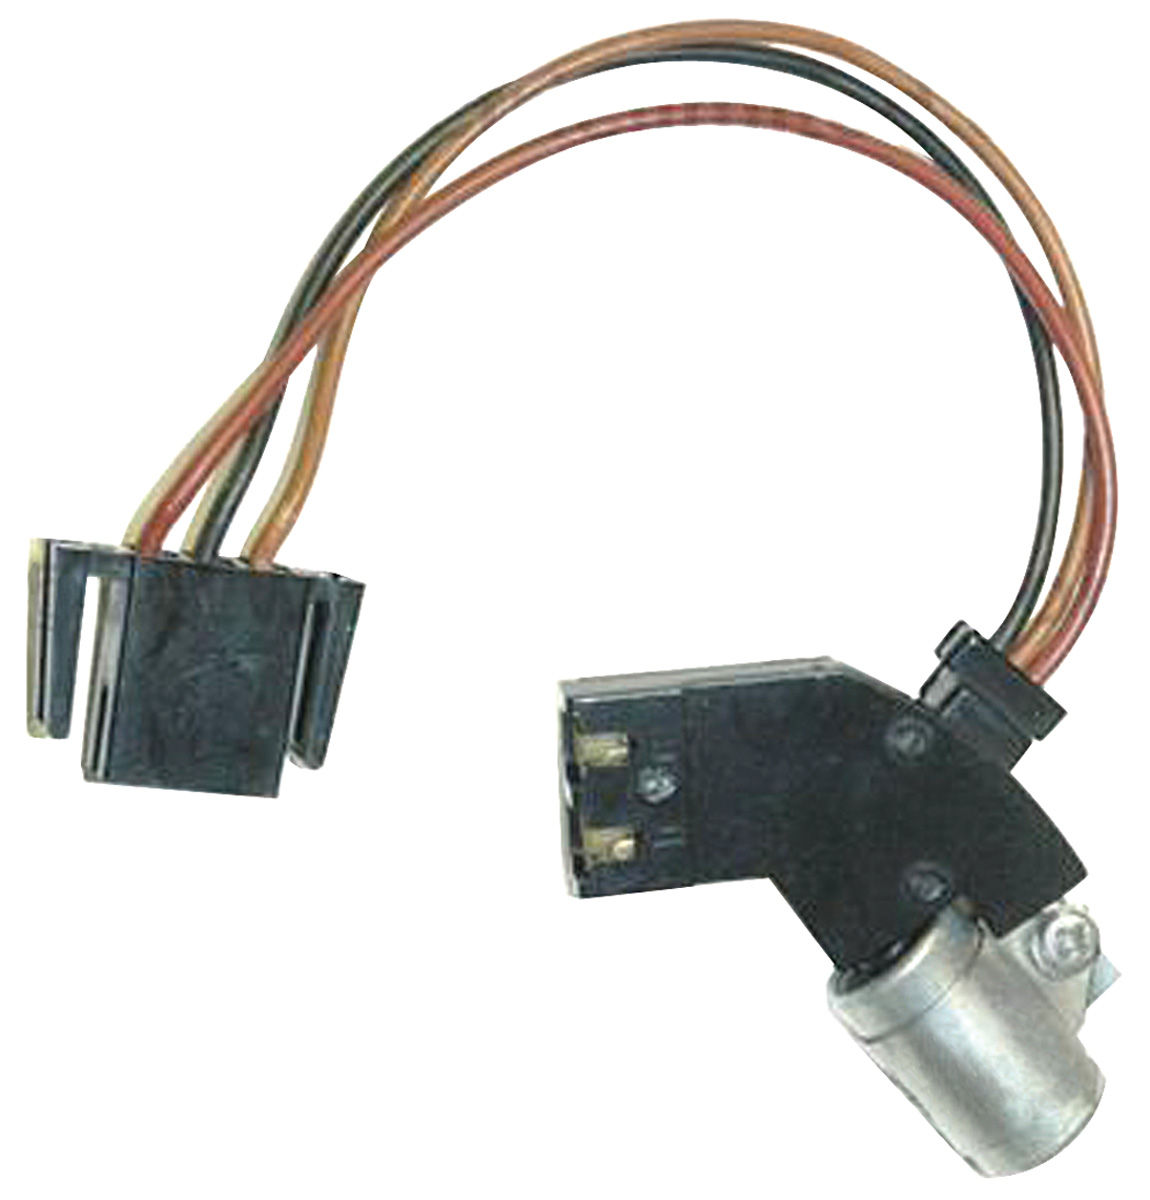 Lectric Limited 1975-77 Bonneville Ignition Module To Coil Harness on mg limited, towing electrics limited, sigatoka electric limited, wilson auto electric limited, sebring limited, cs electric limited,